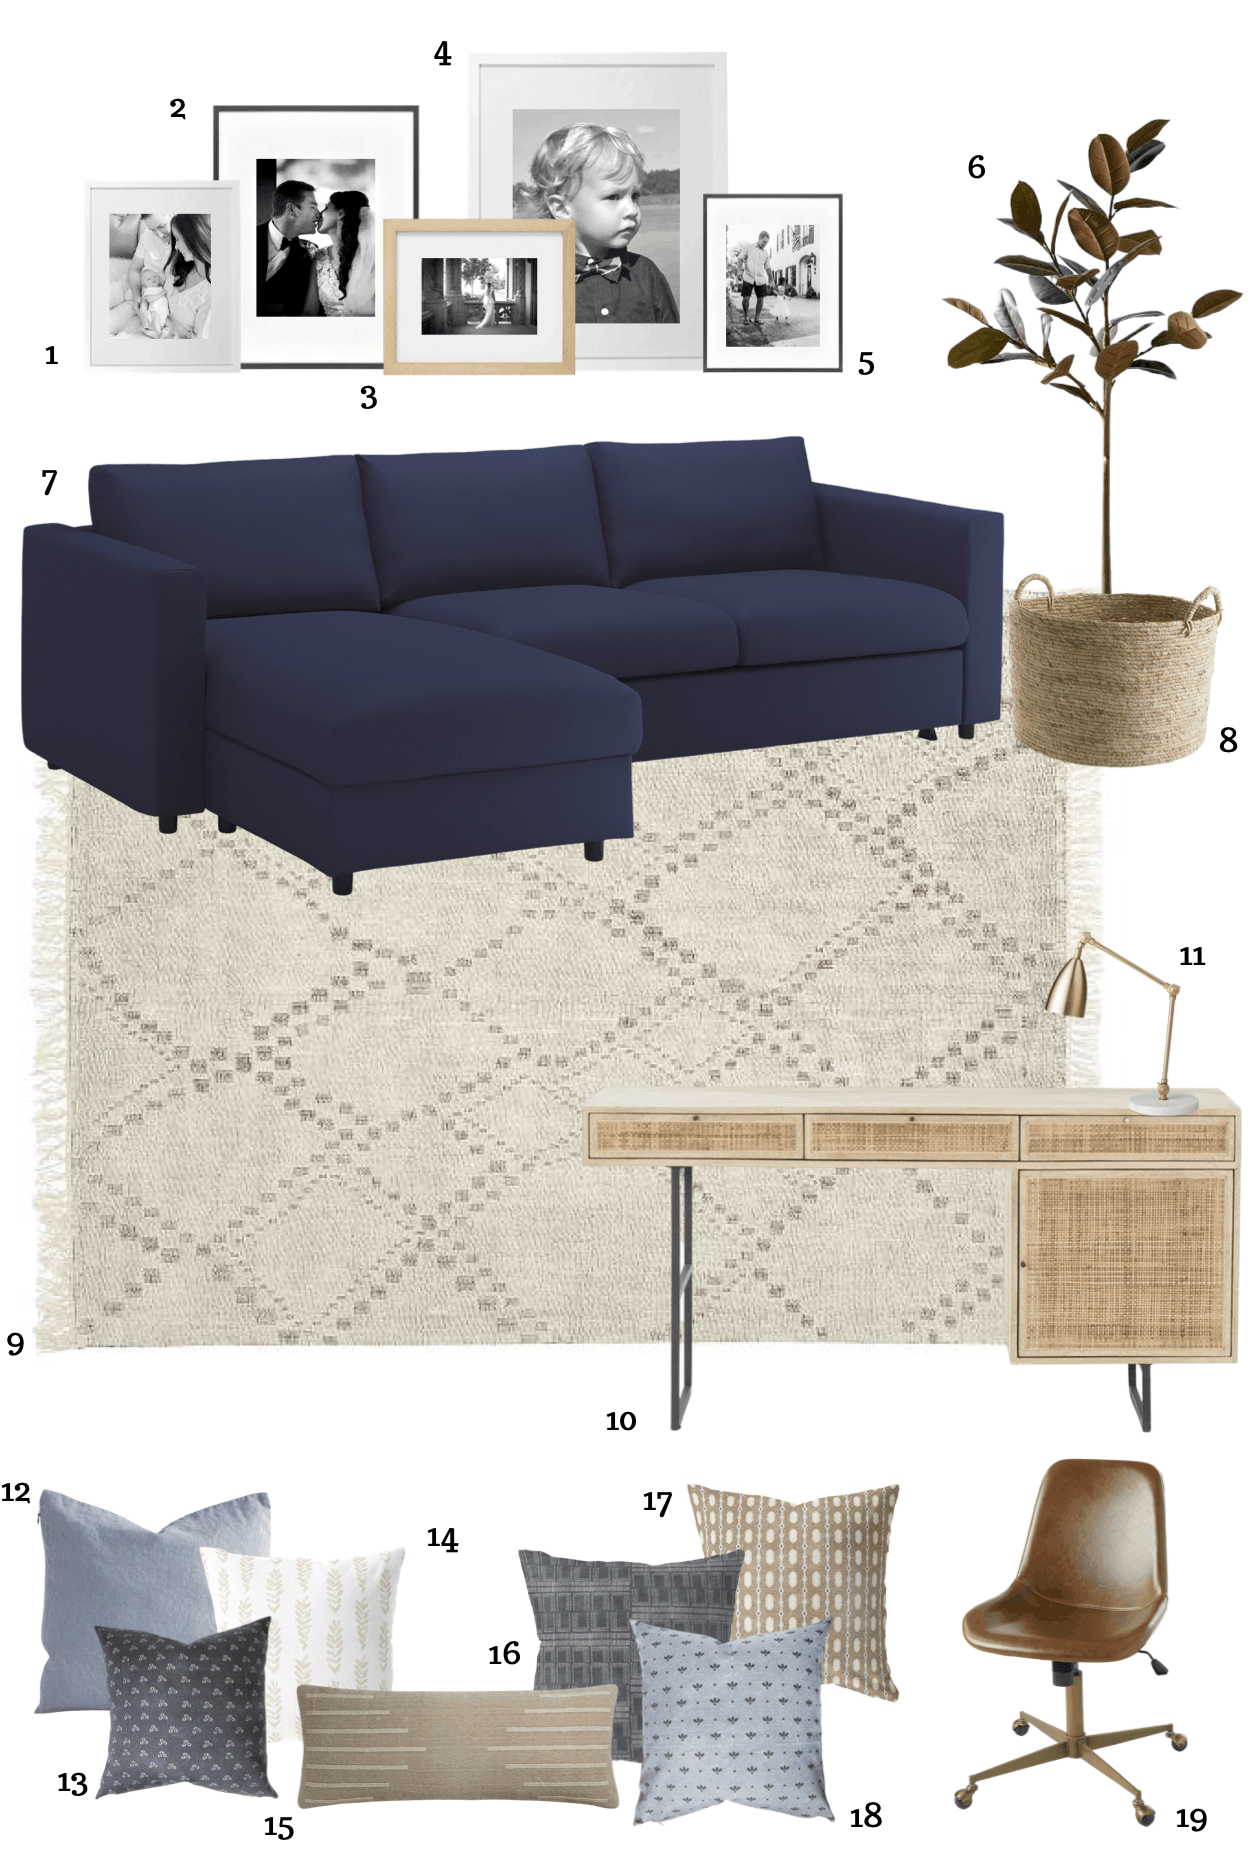 A multifunctional office with a sleeper sectional for guests, toy storage closet, and desk for work.  #officeorganization #officedecor #office #coastalhome #coastaldecor #multifunctionalroom #potterybarn #canefurniture #canedesk #cane #officefurniture #bluesofa #bluesectional #ikeahack #ikeasofa #finnala #ikeafinnala